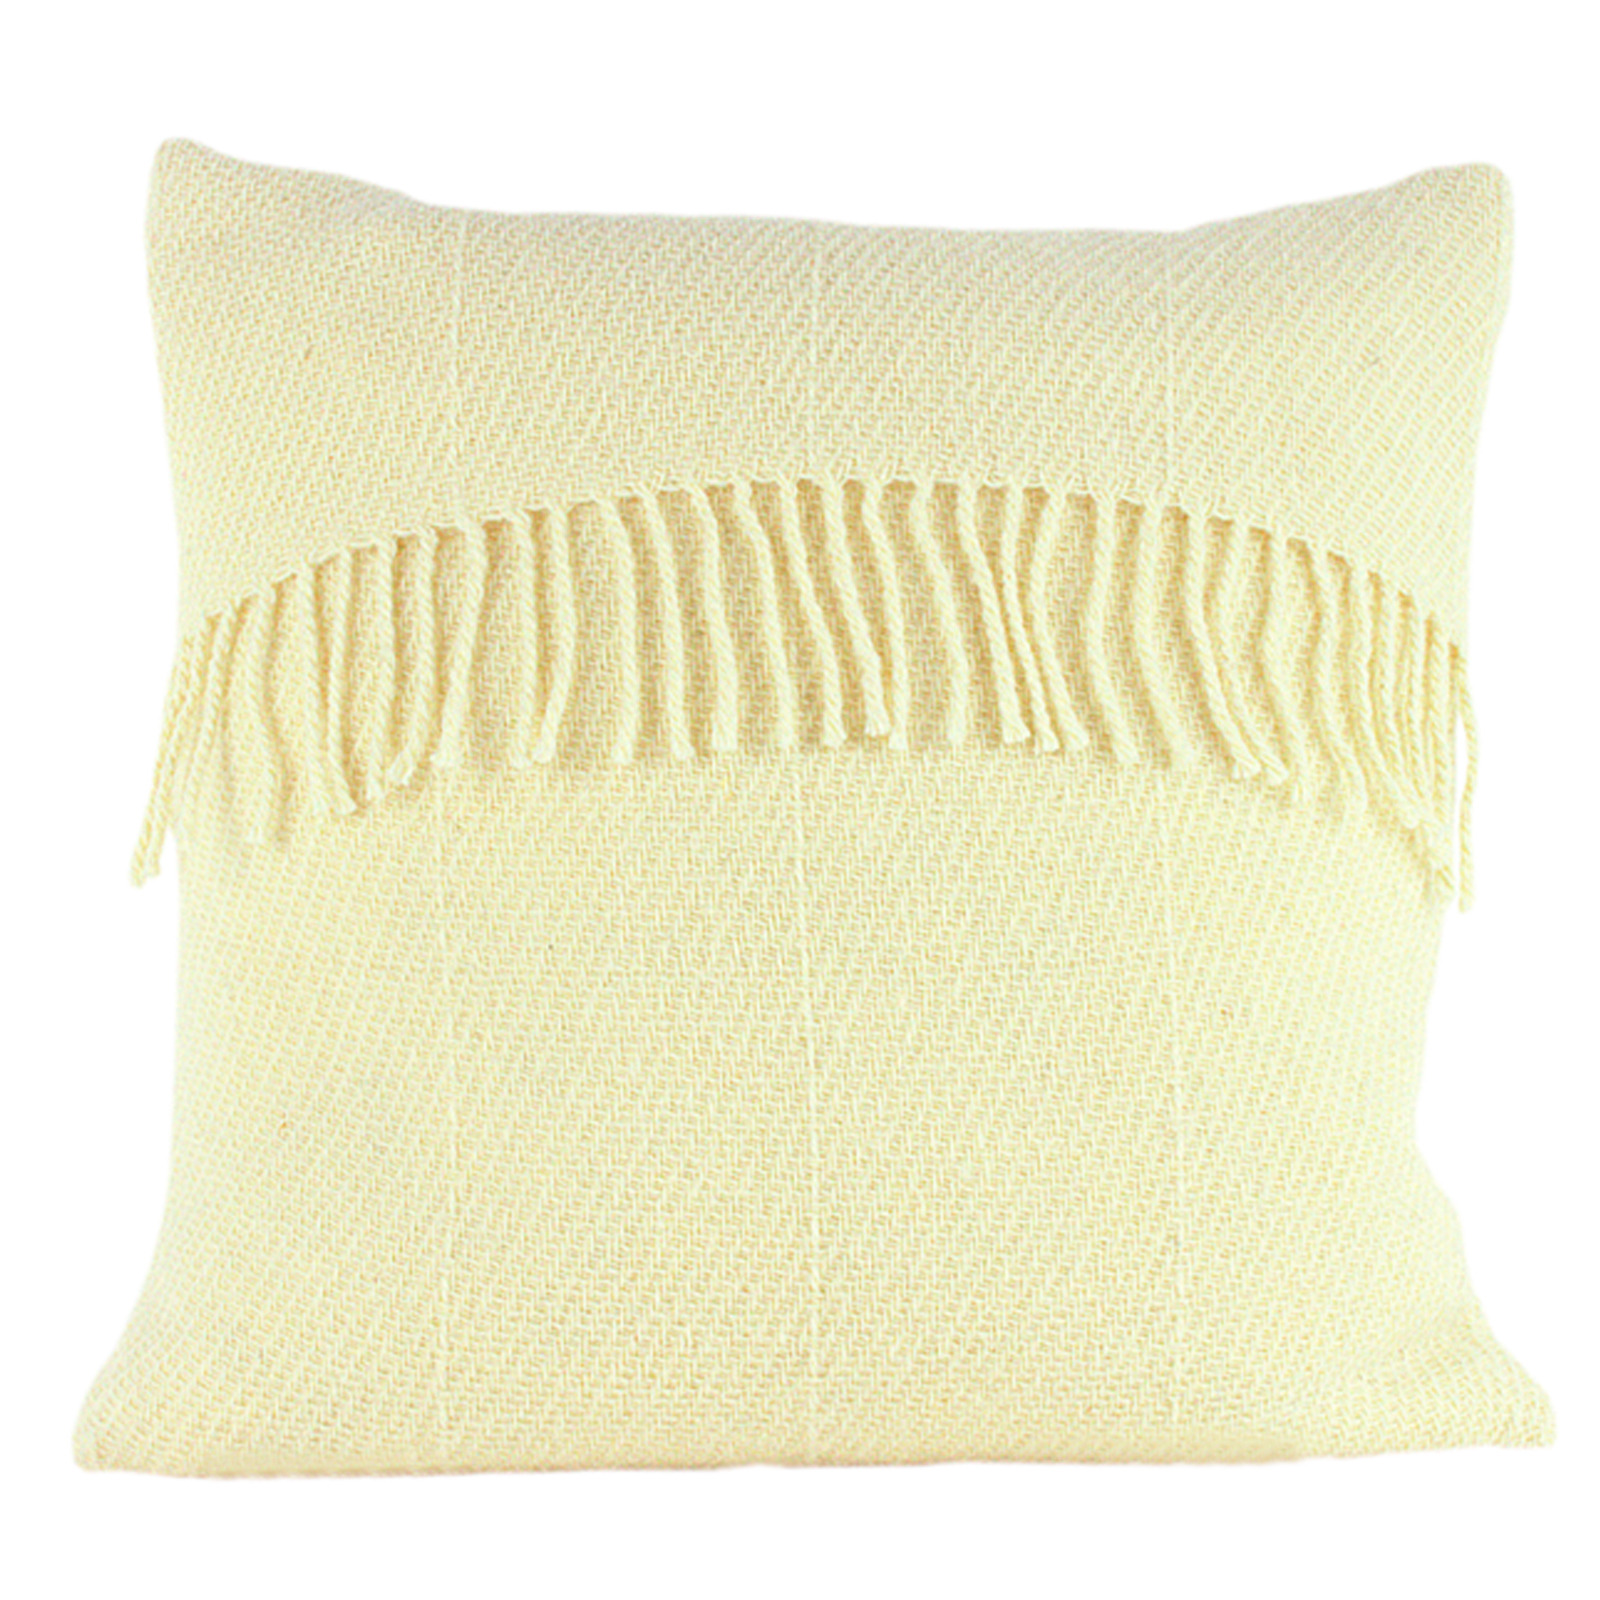 Romney Copperhurst Cushion - White Clover